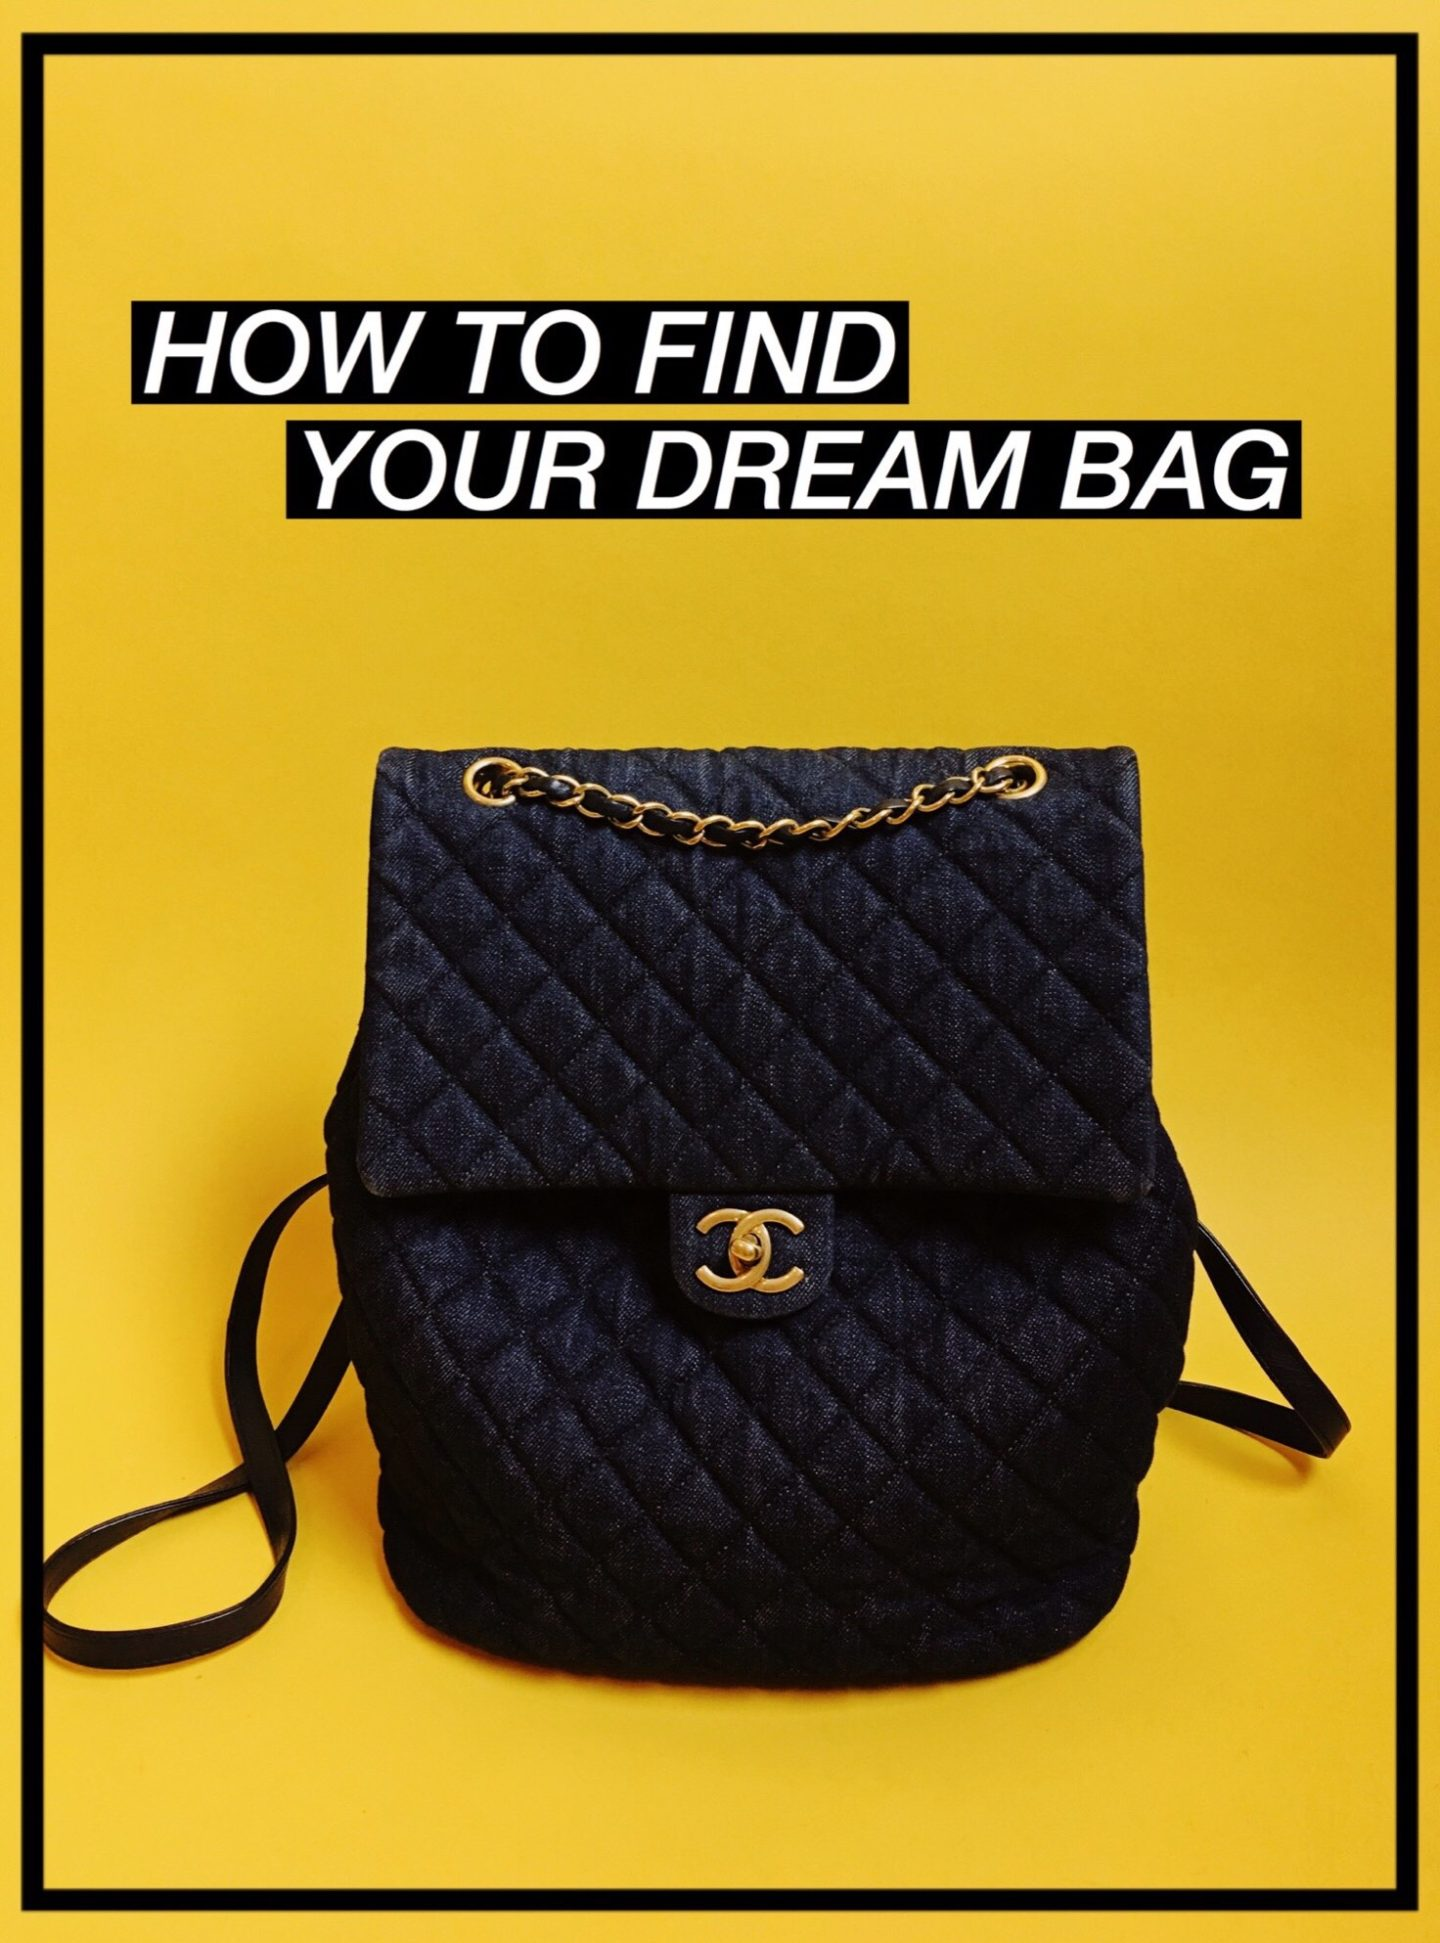 HOW TO FIND YOUR DREAM BAG.